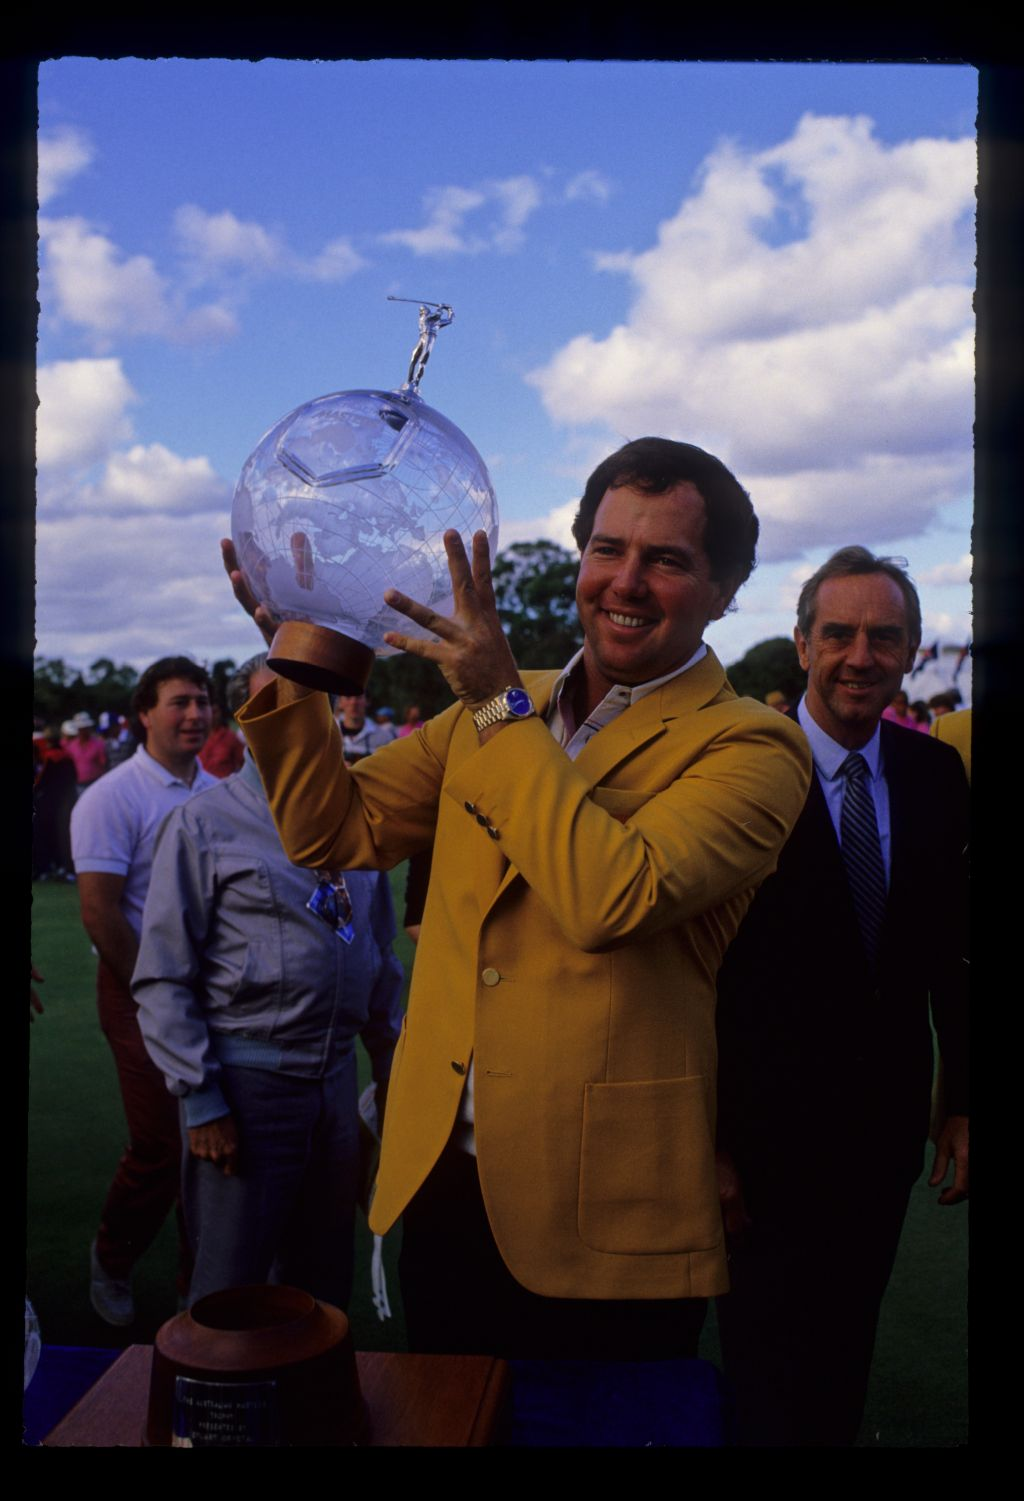 Mark O'Meara holding the trophy aloft after winning the 1986 Australian Masters